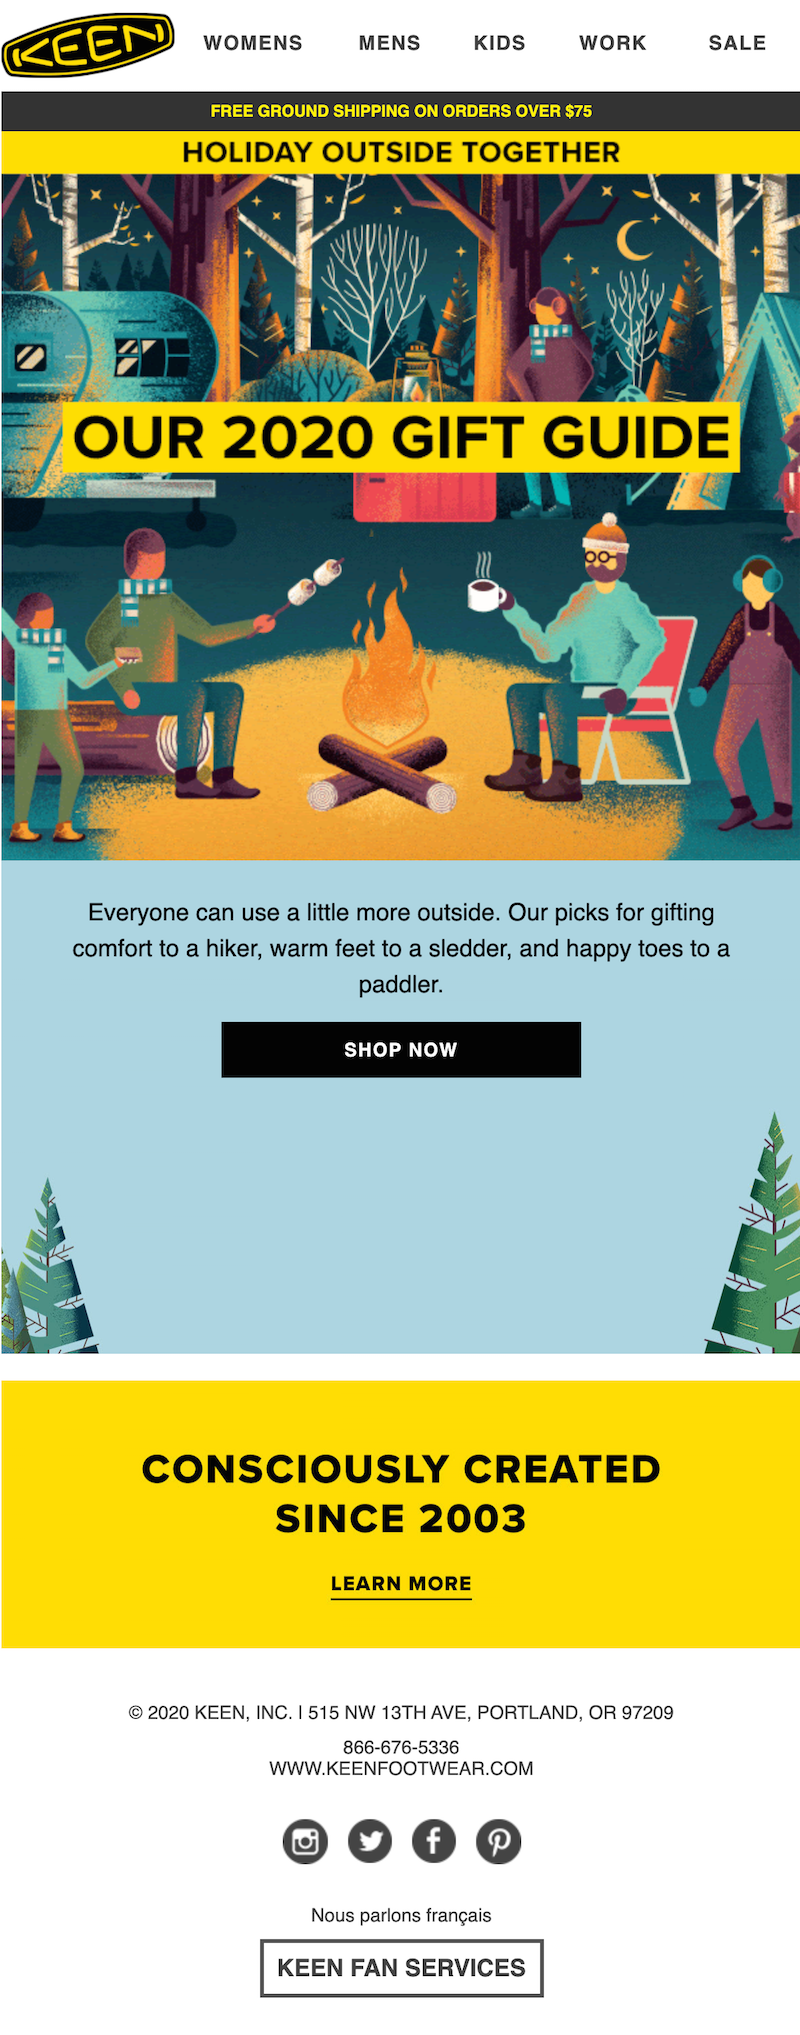 Christmas email with gift guide